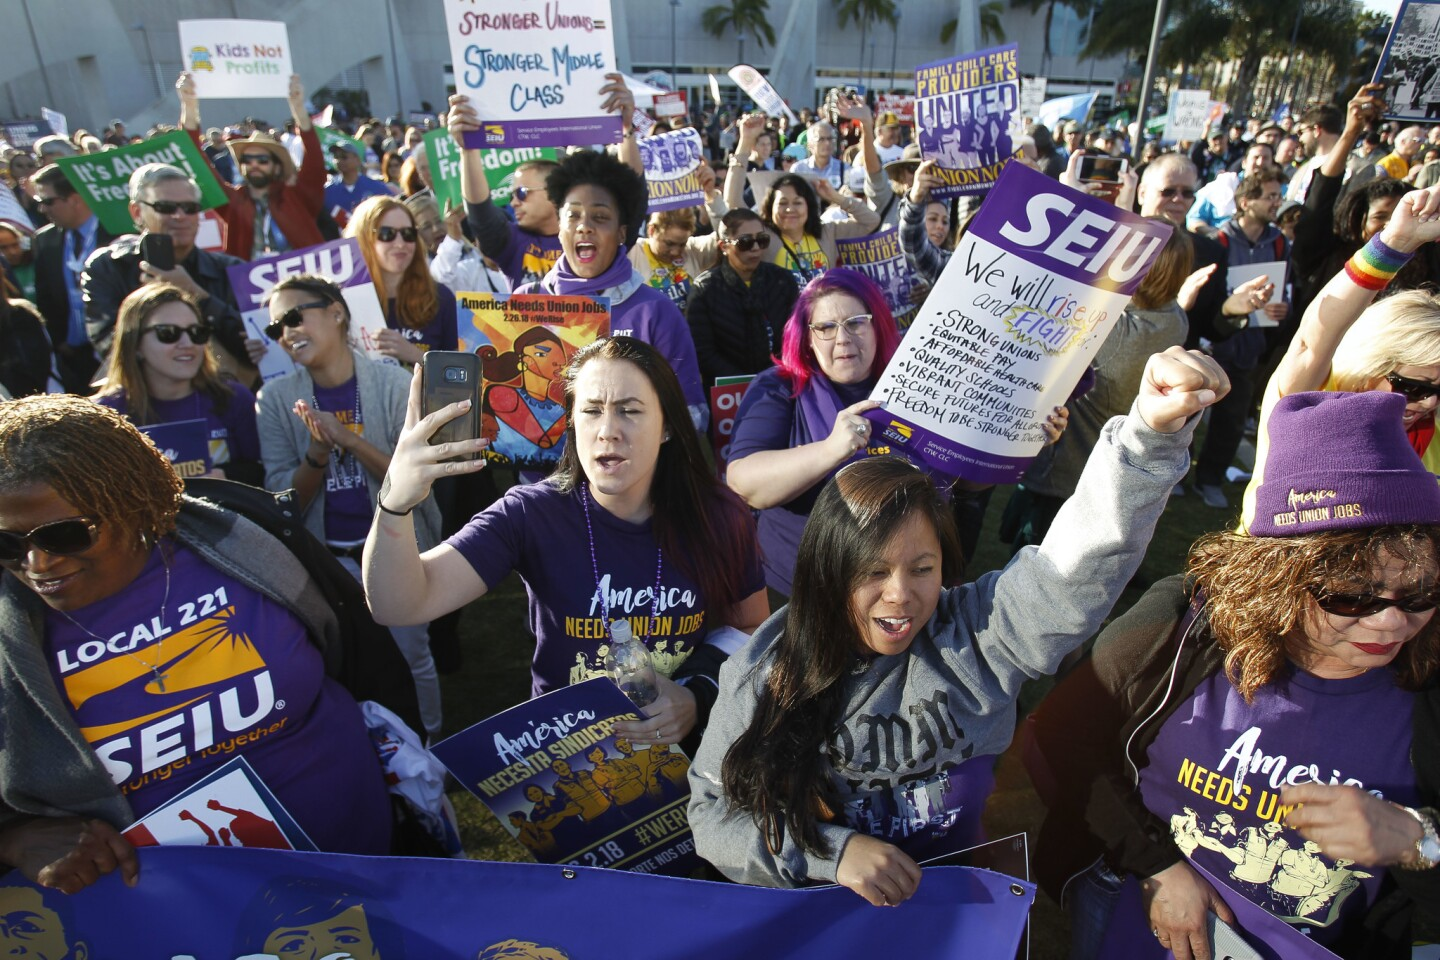 Union members cheer as they listen to billionaire hedge fund manager and progressive activist Tom Steyer speak.